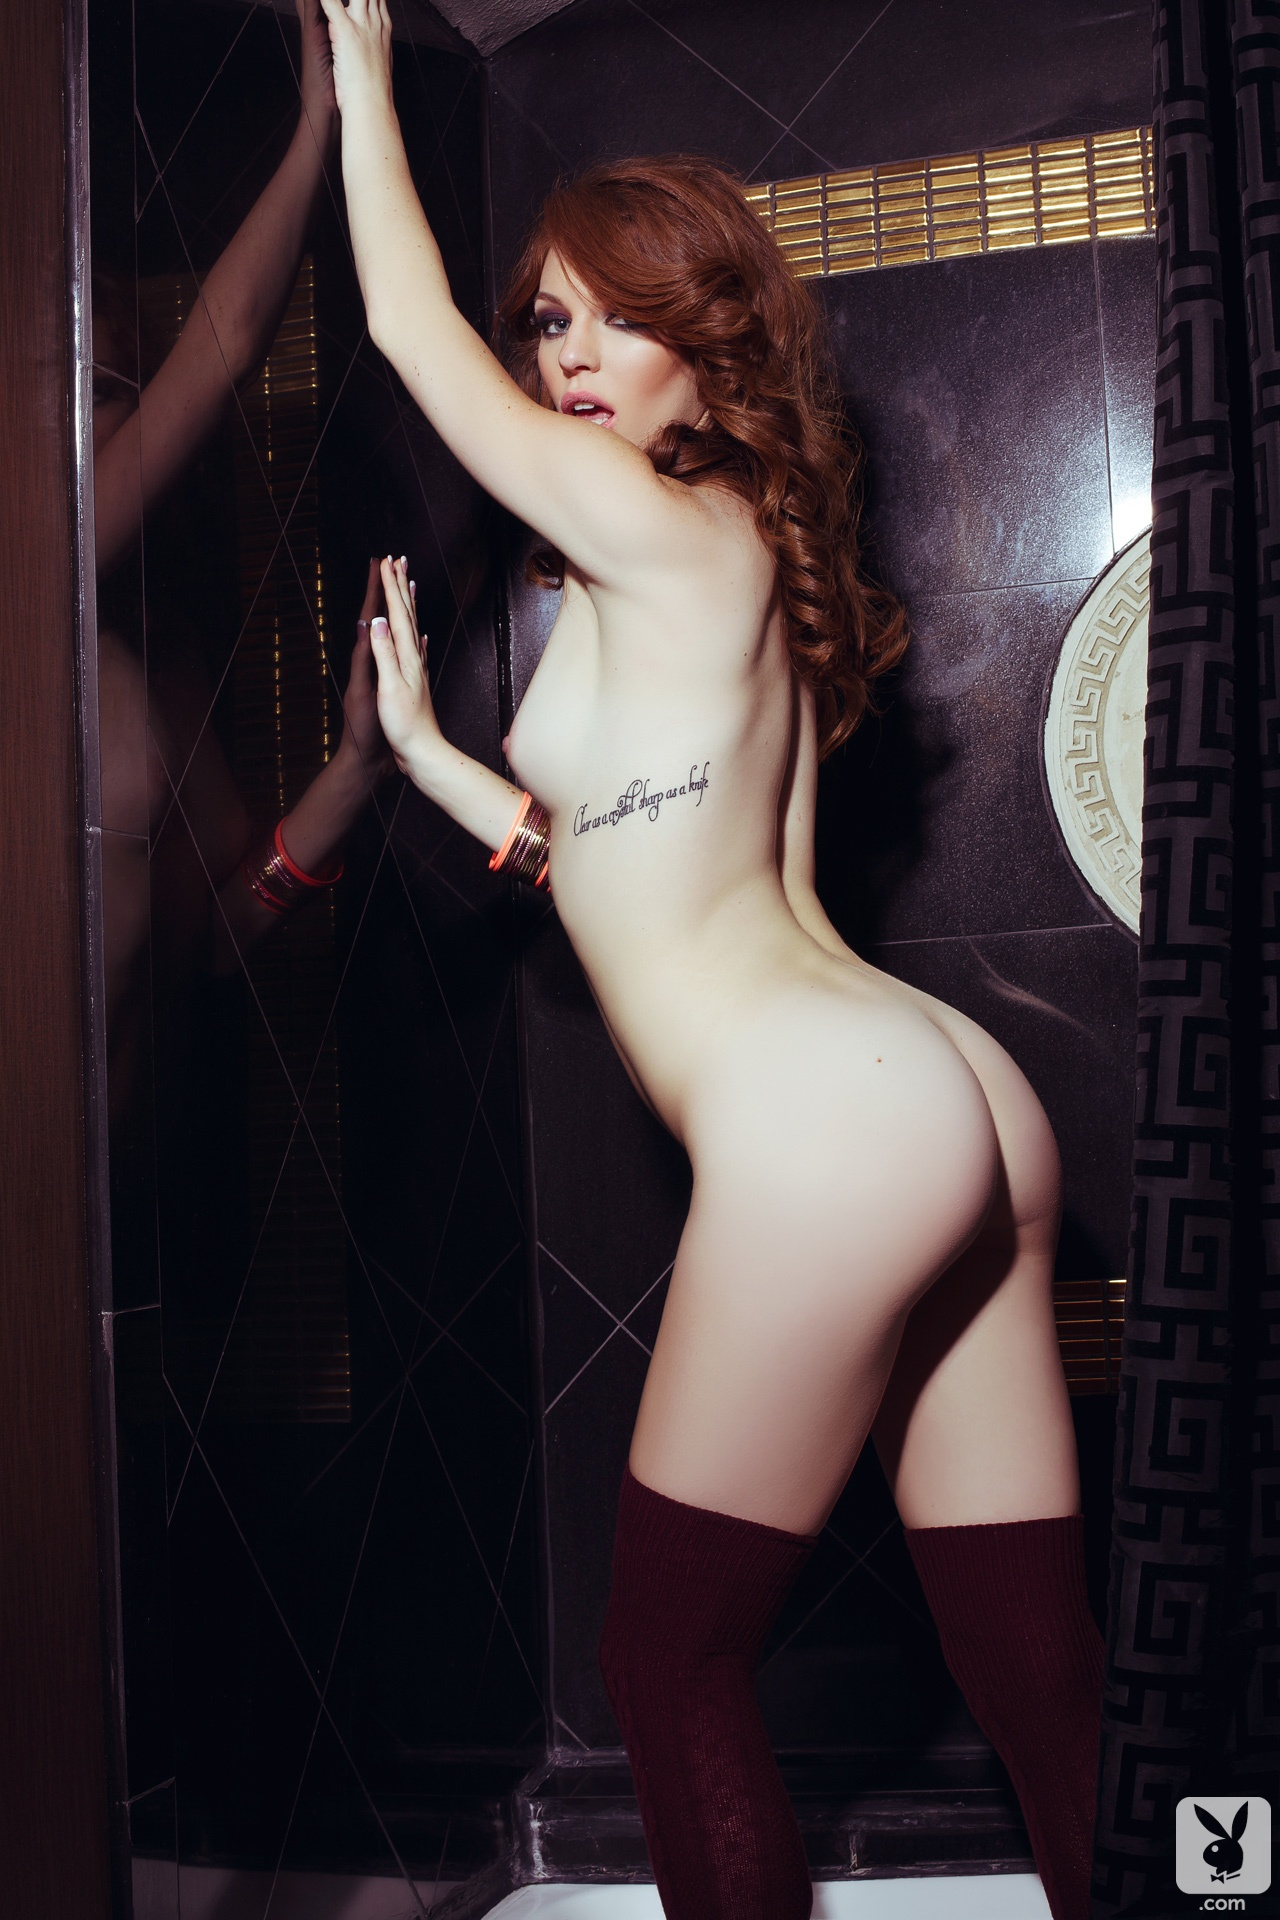 tawny-swain-bathroom-playboy-11